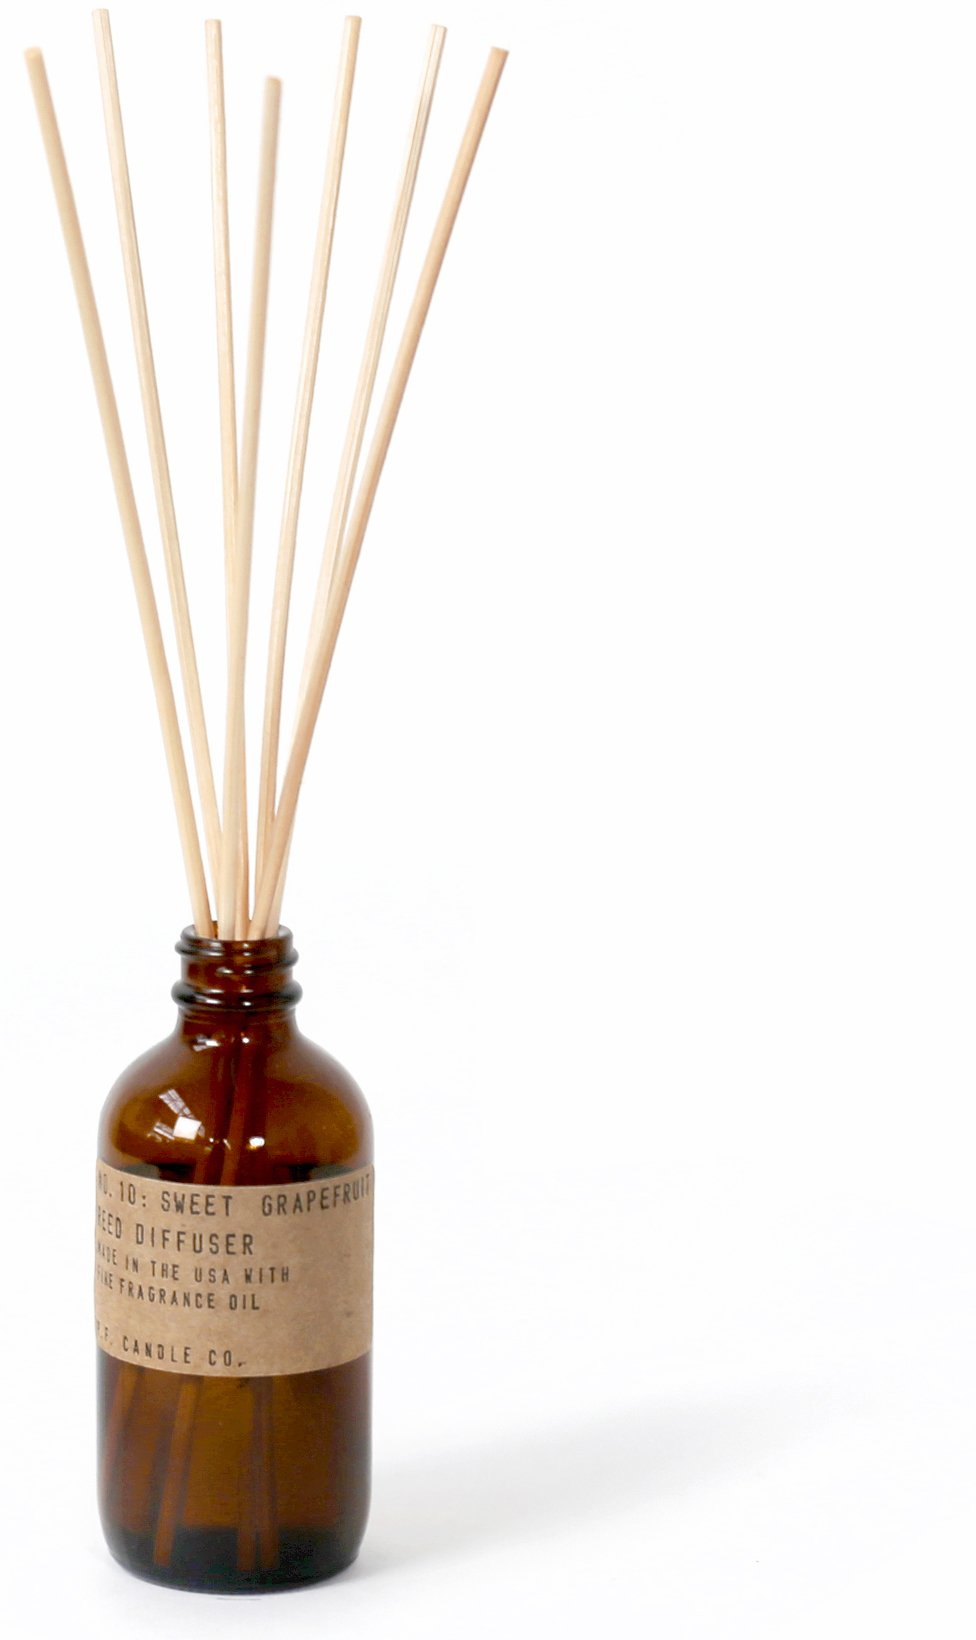 P.F. Candle Co. - No. 10: Sweet Grapefruit Diffuser by P.F. Candle Co. (Image #1)